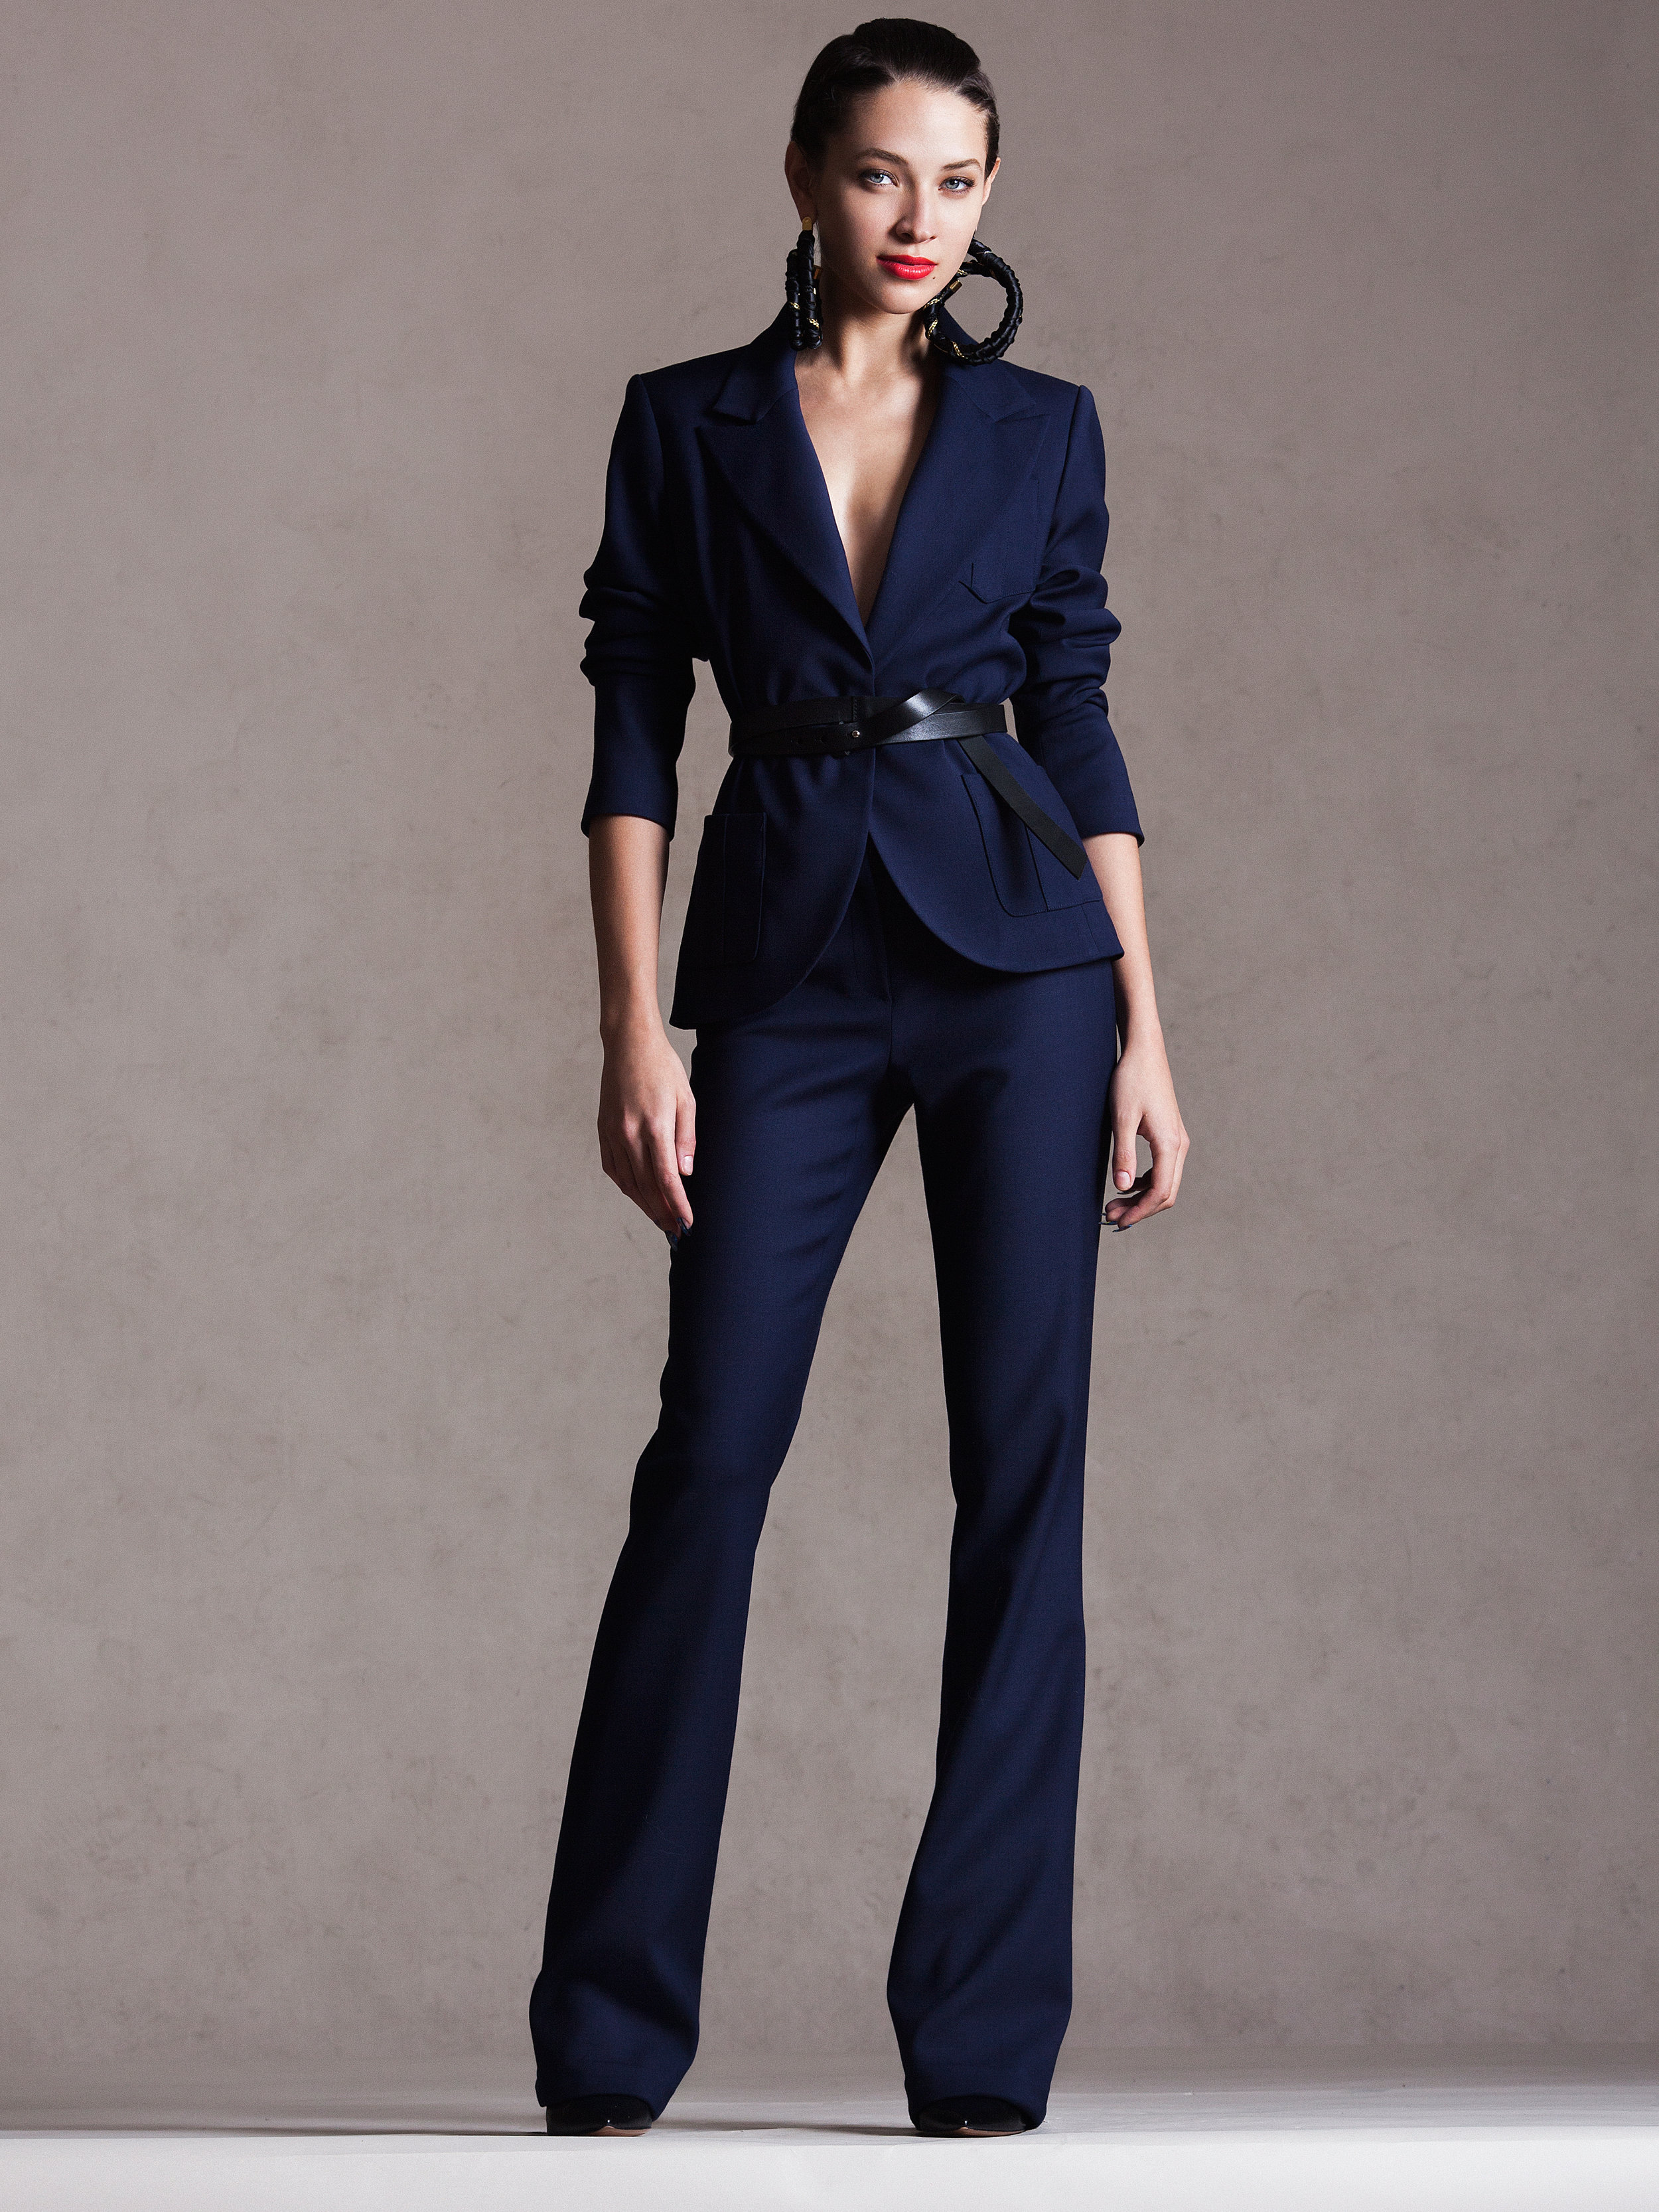 Lucian-Matis-Lookbook-20150204-007c.jpg